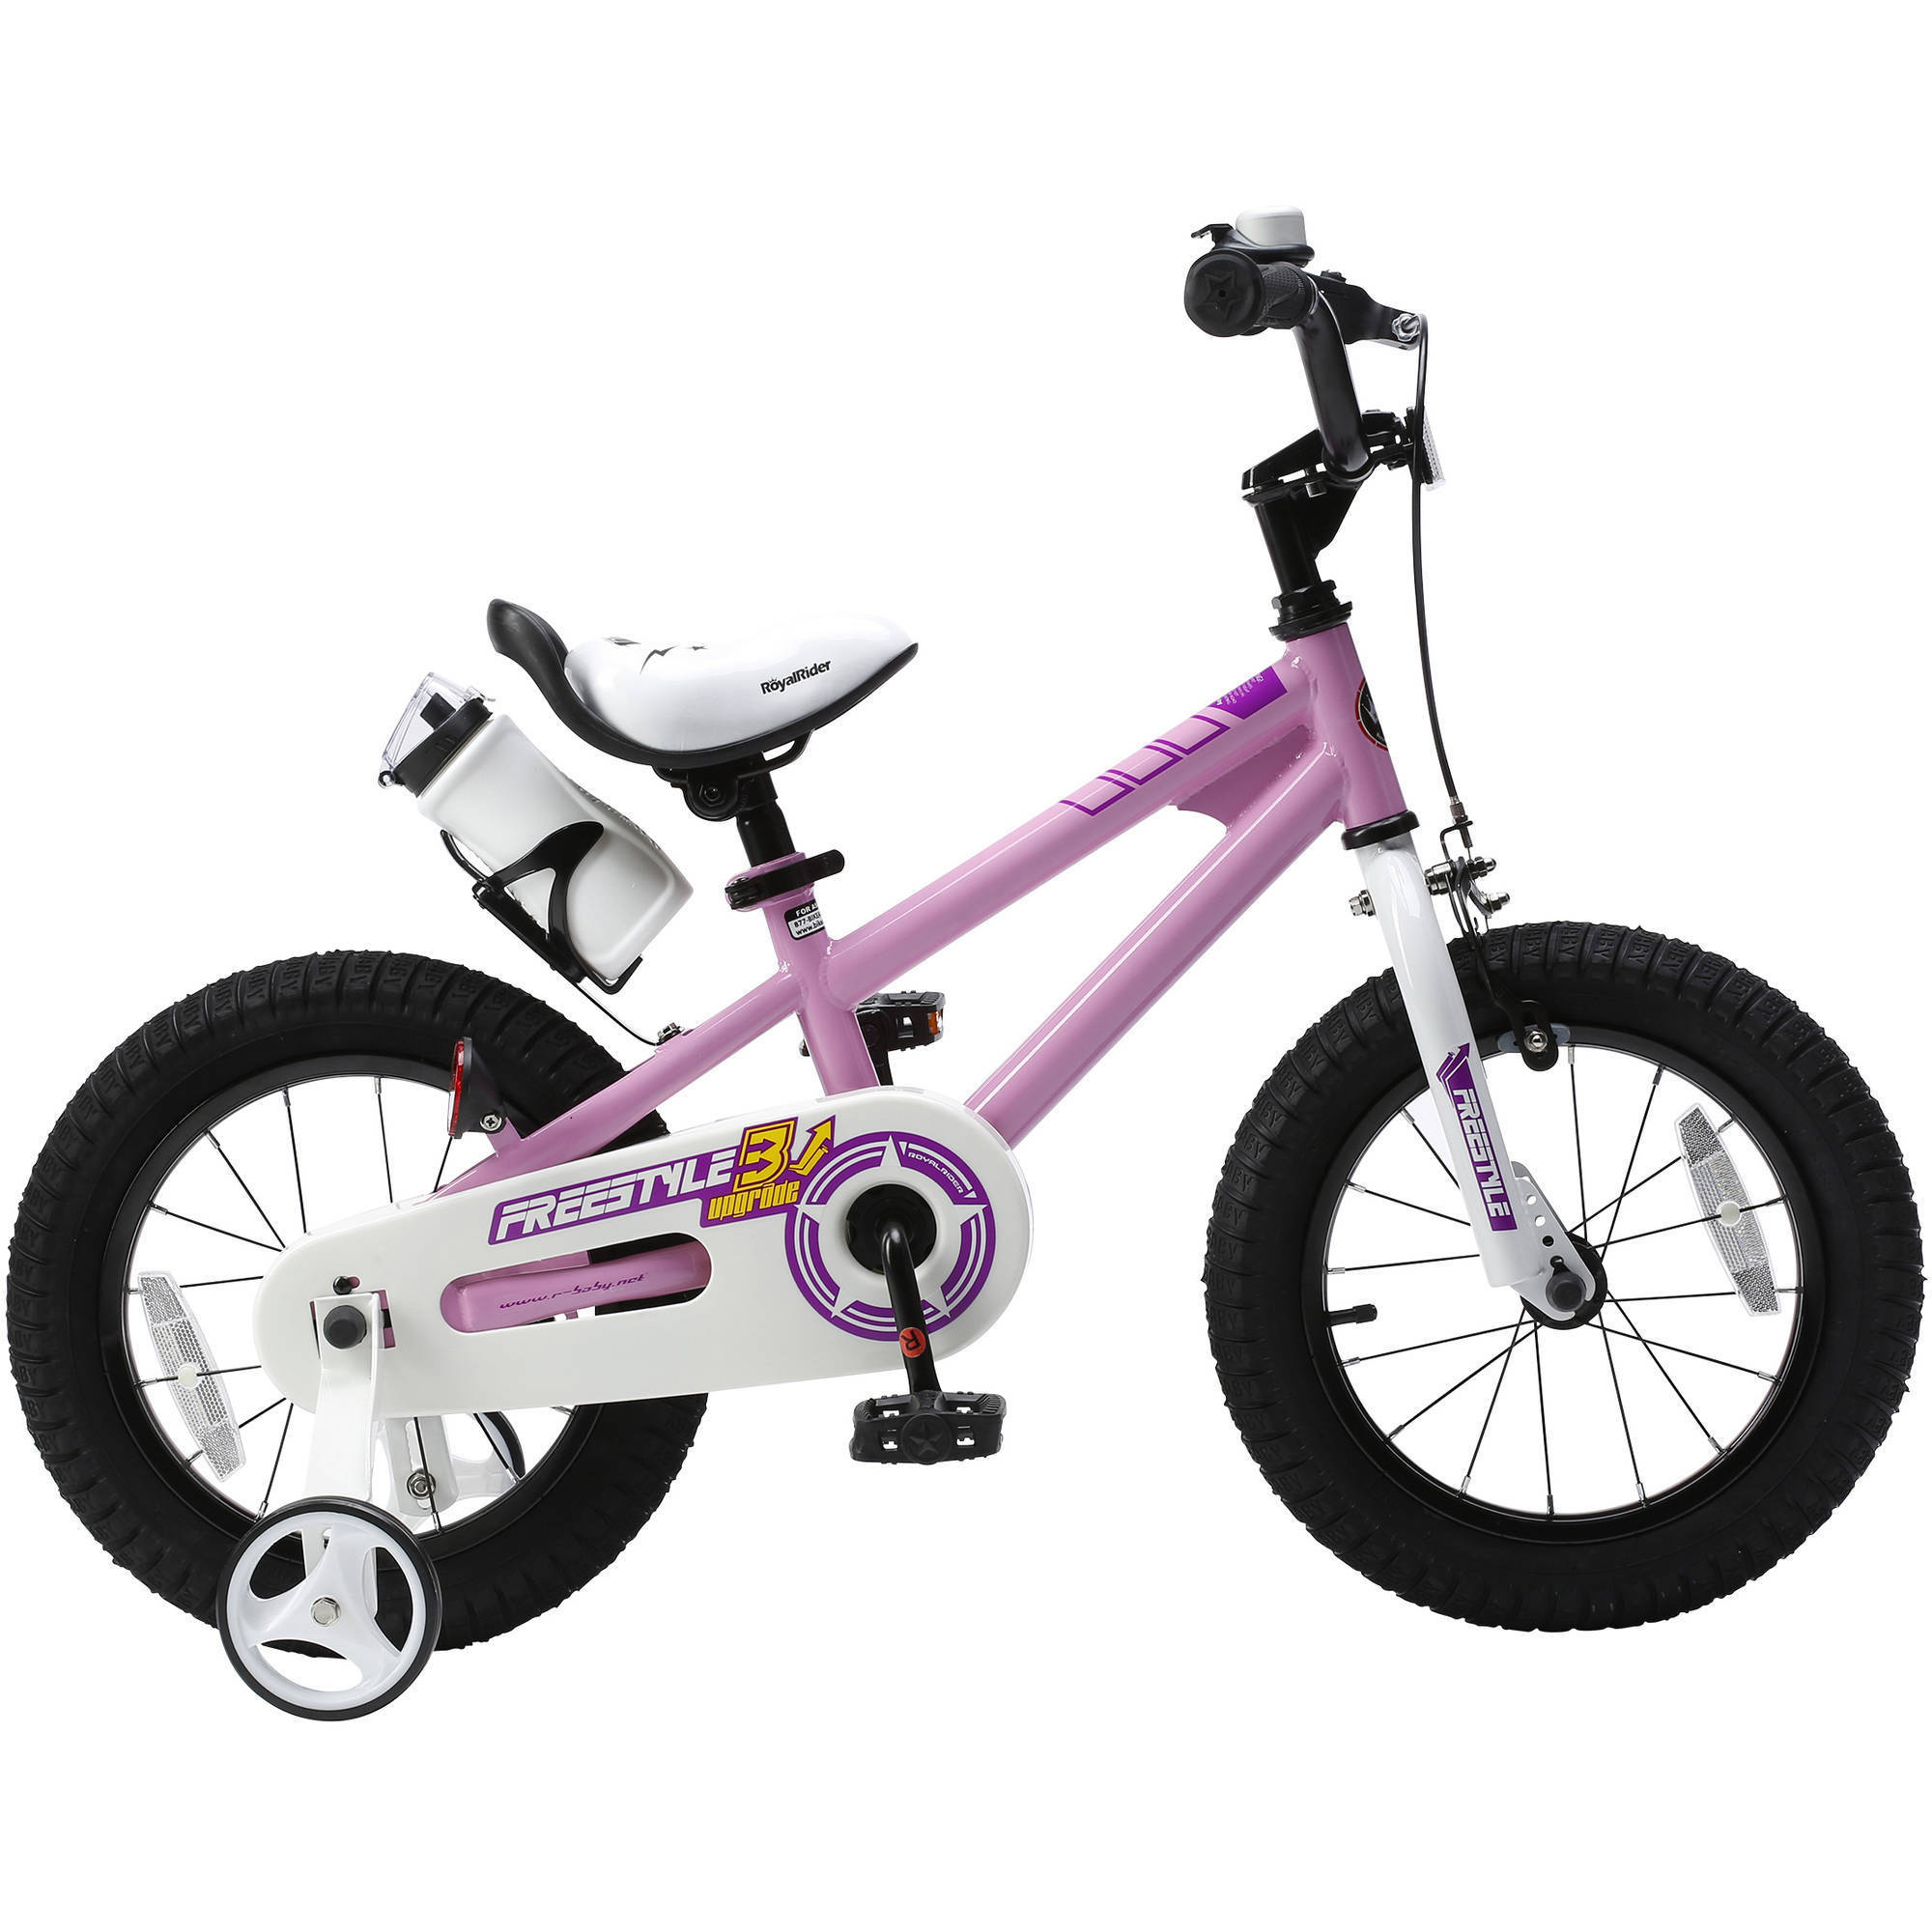 RoyalBaby Freestyle Kid's Bicycle